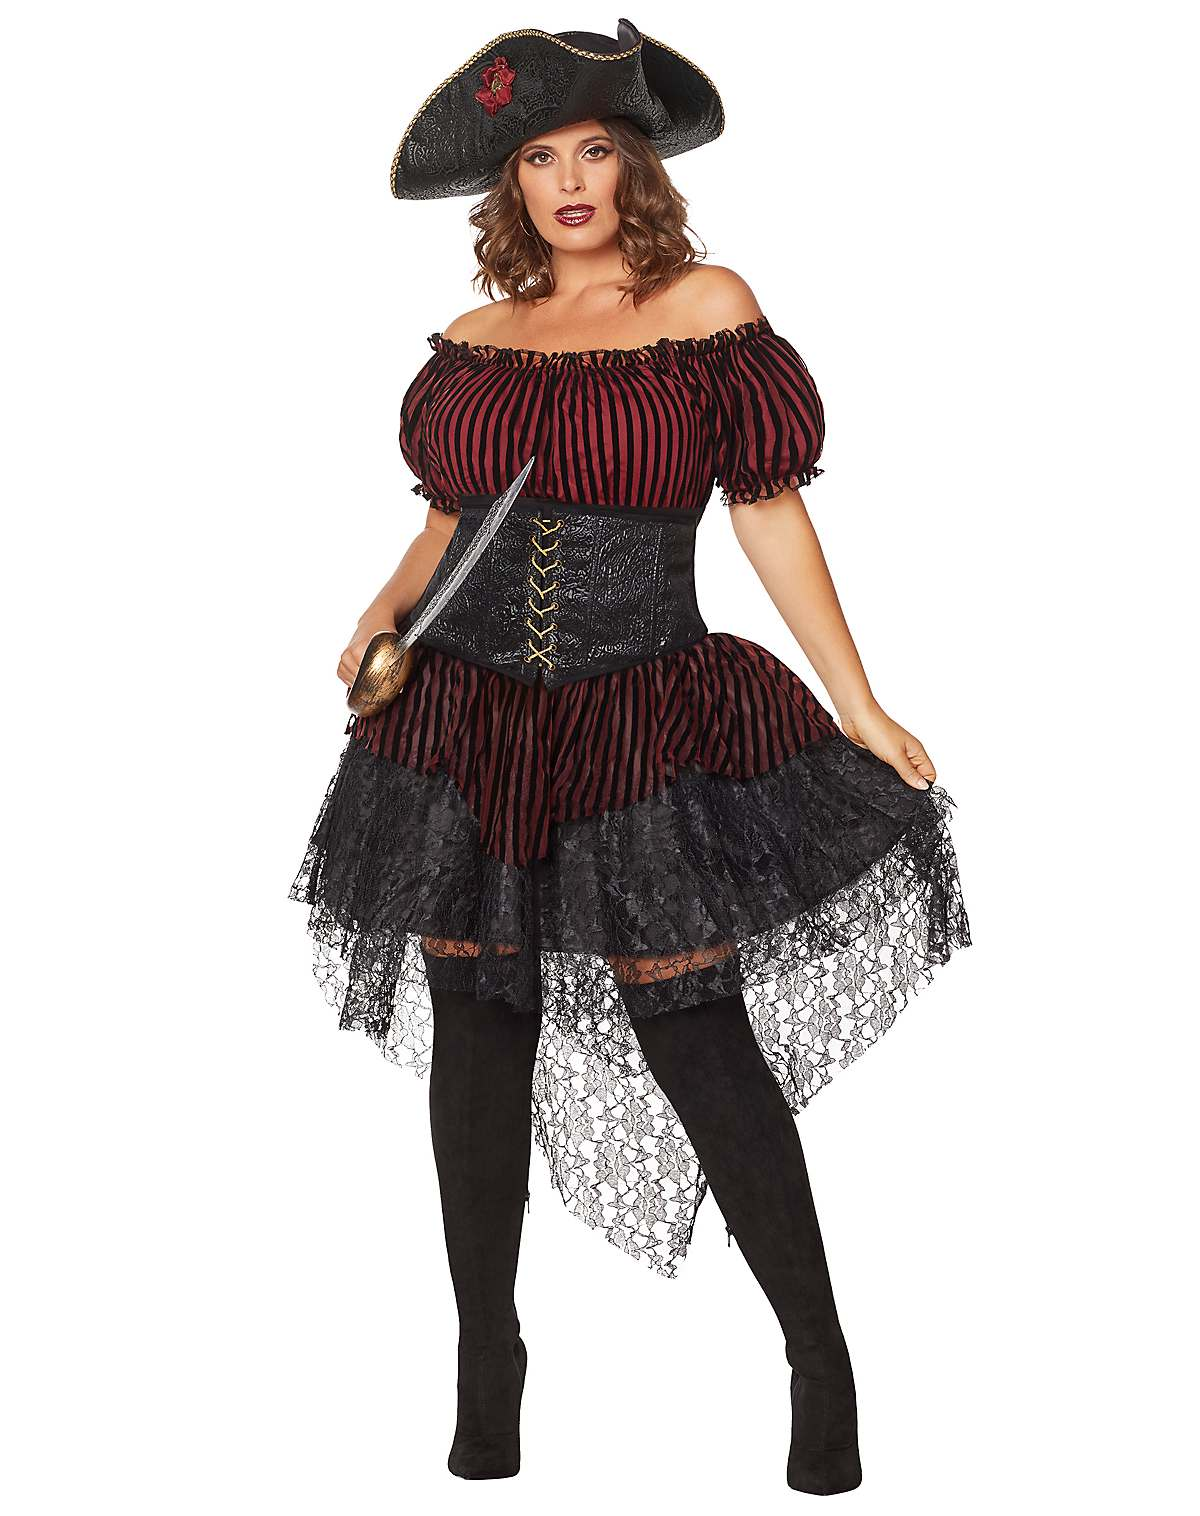 Lady of the Seas plus size costume